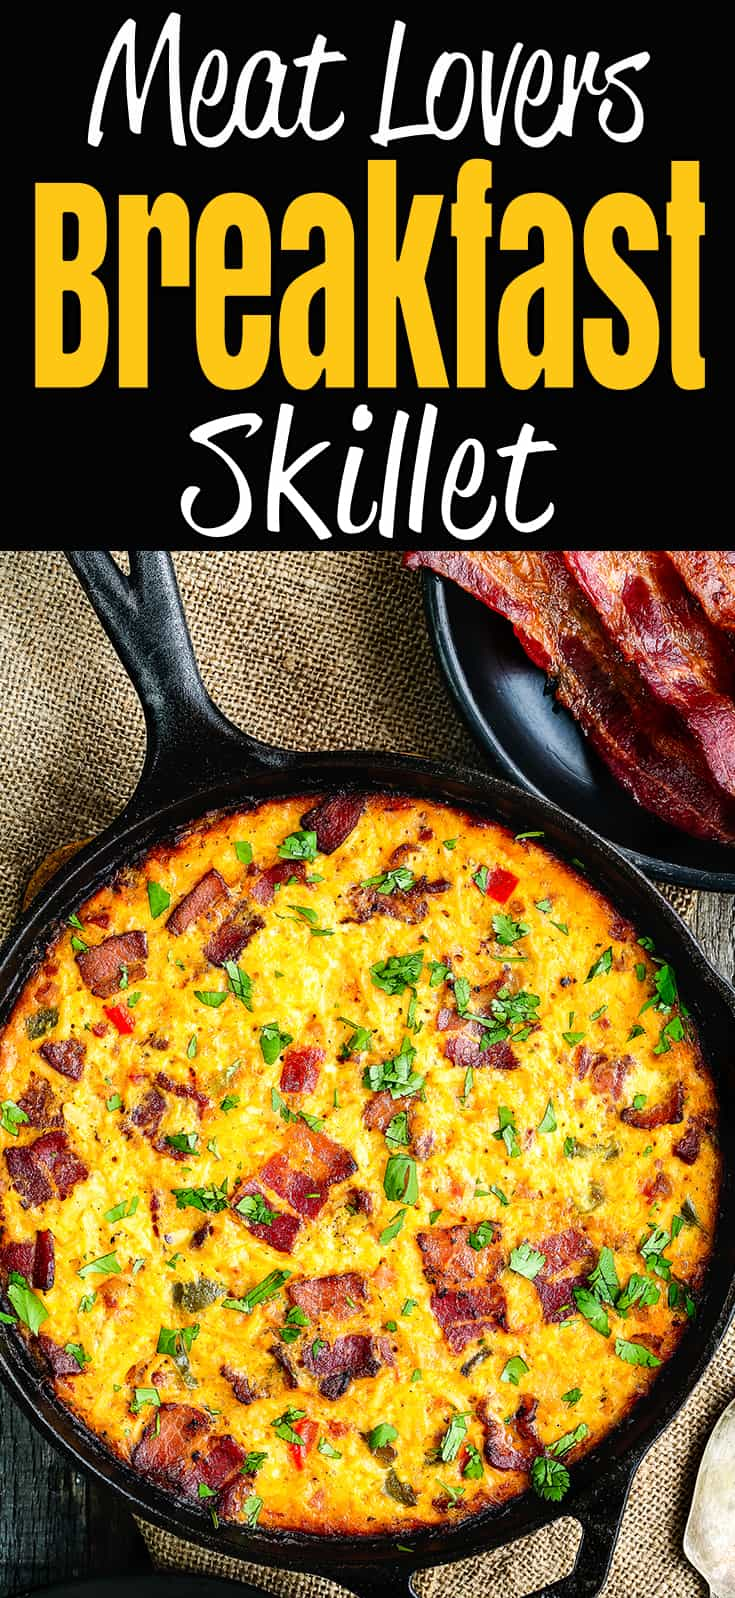 This Meat Lovers Breakfast Skillet is loaded with bacon, ham, chorizo, cheese, hash browns, and veggies! Prepare it the night before, refrigerate, then bake it up in the morning. The perfect savory breakfast for Father's Day, holidays, or get-togethers with family and friends. https://mommyshomecooking.com